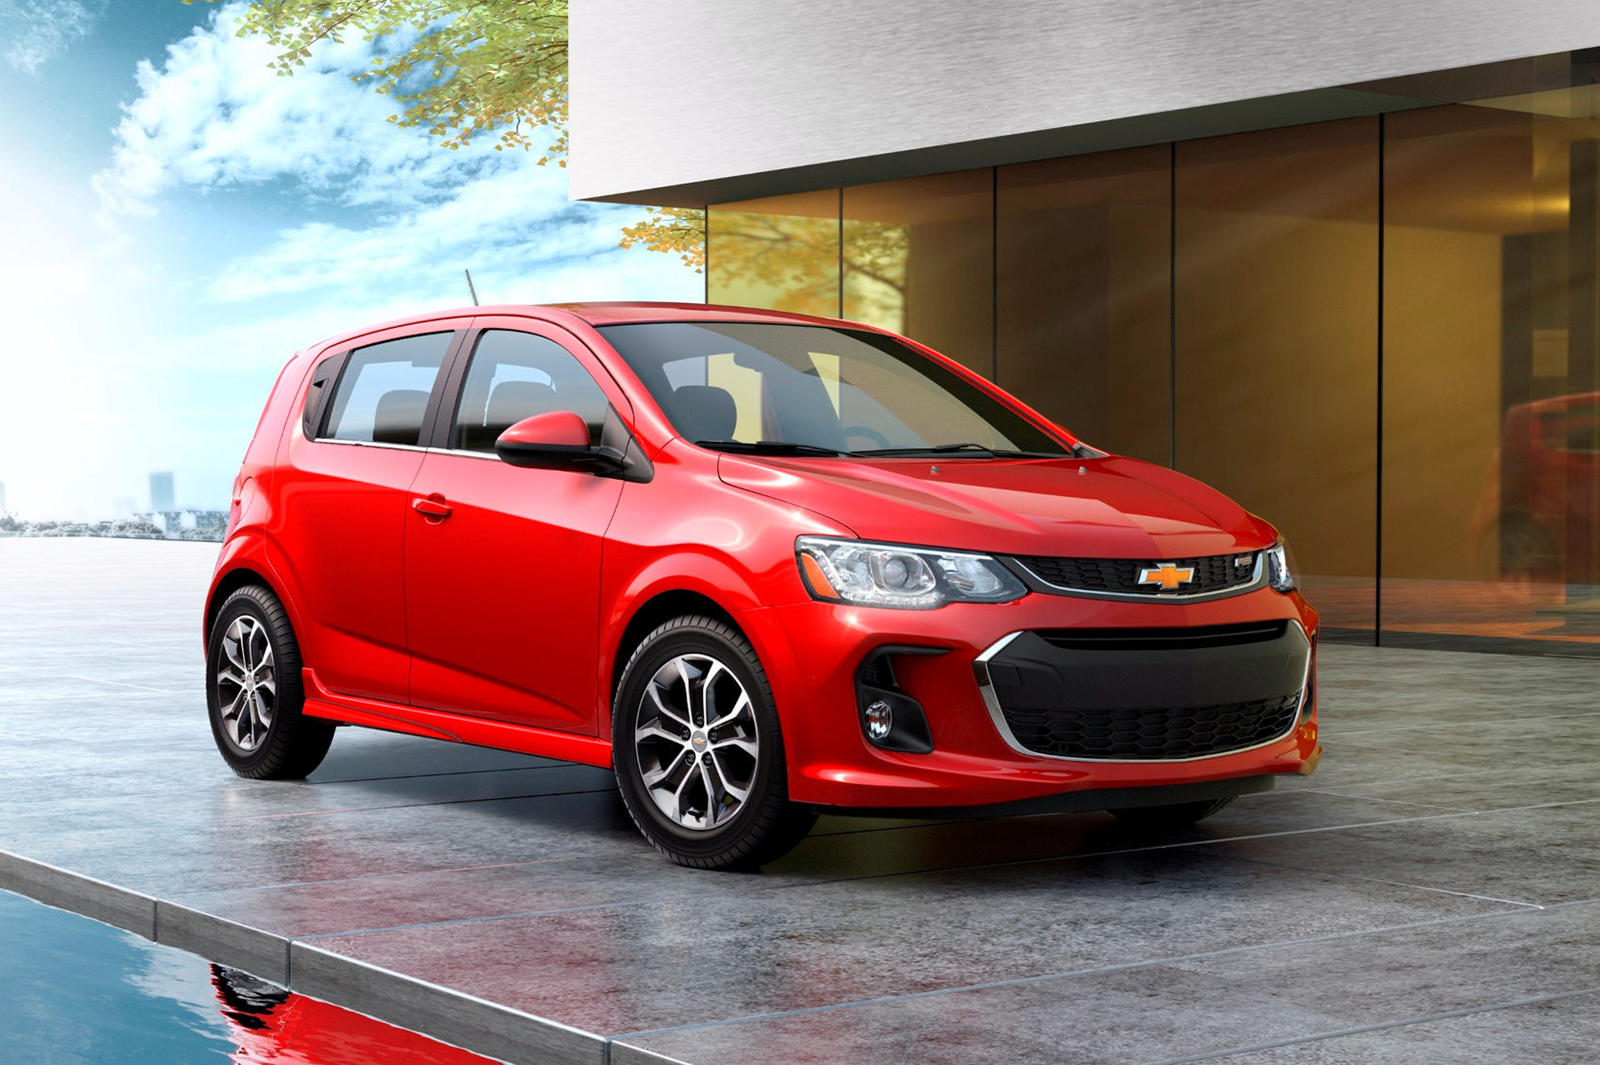 2020 Chevrolet Sonic Hatchback Front View